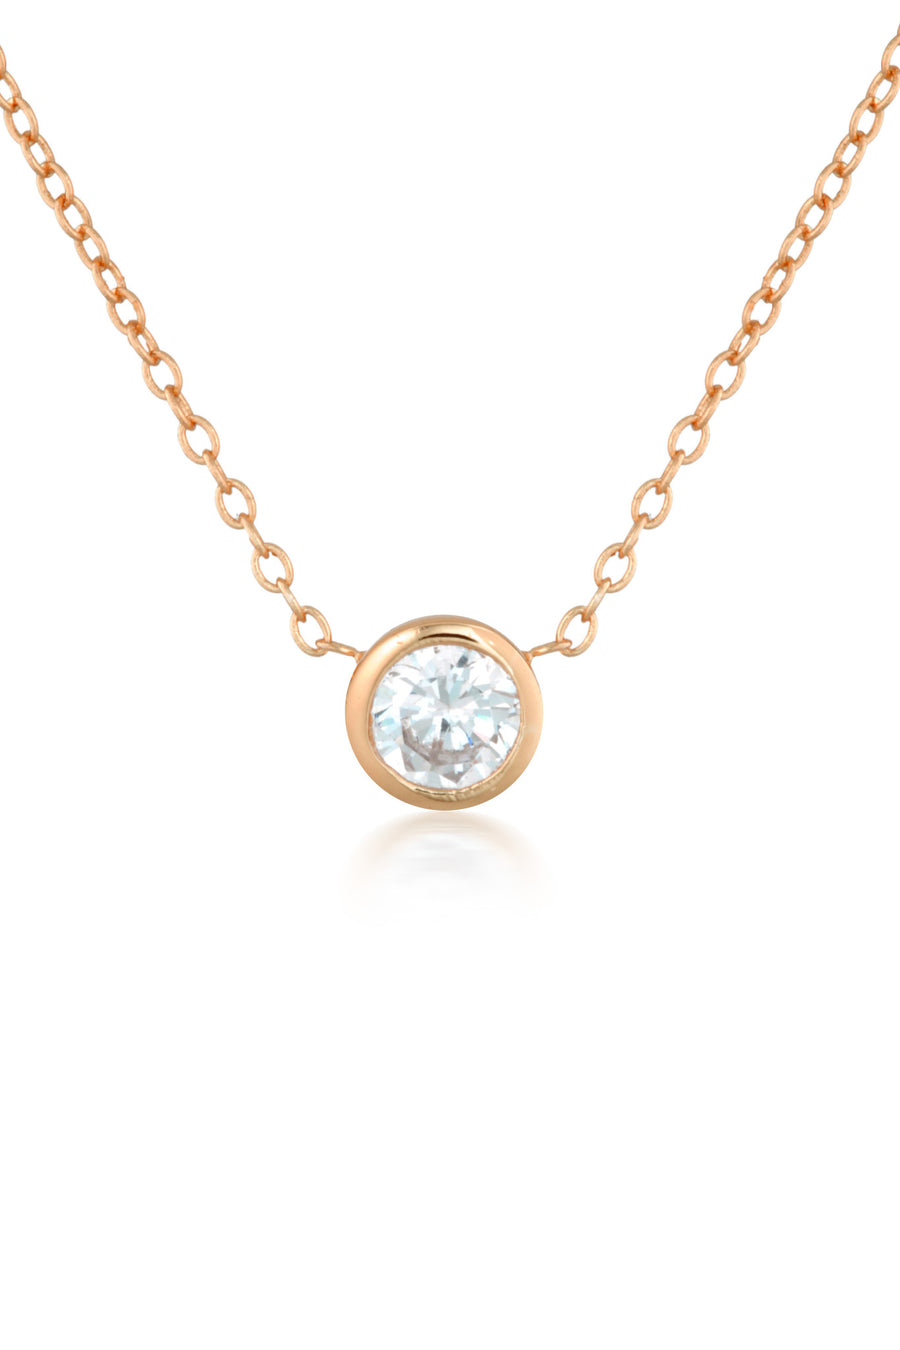 Myla Necklace in Rose Gold - HER Empire Fashion Boutique Terrigal & Online